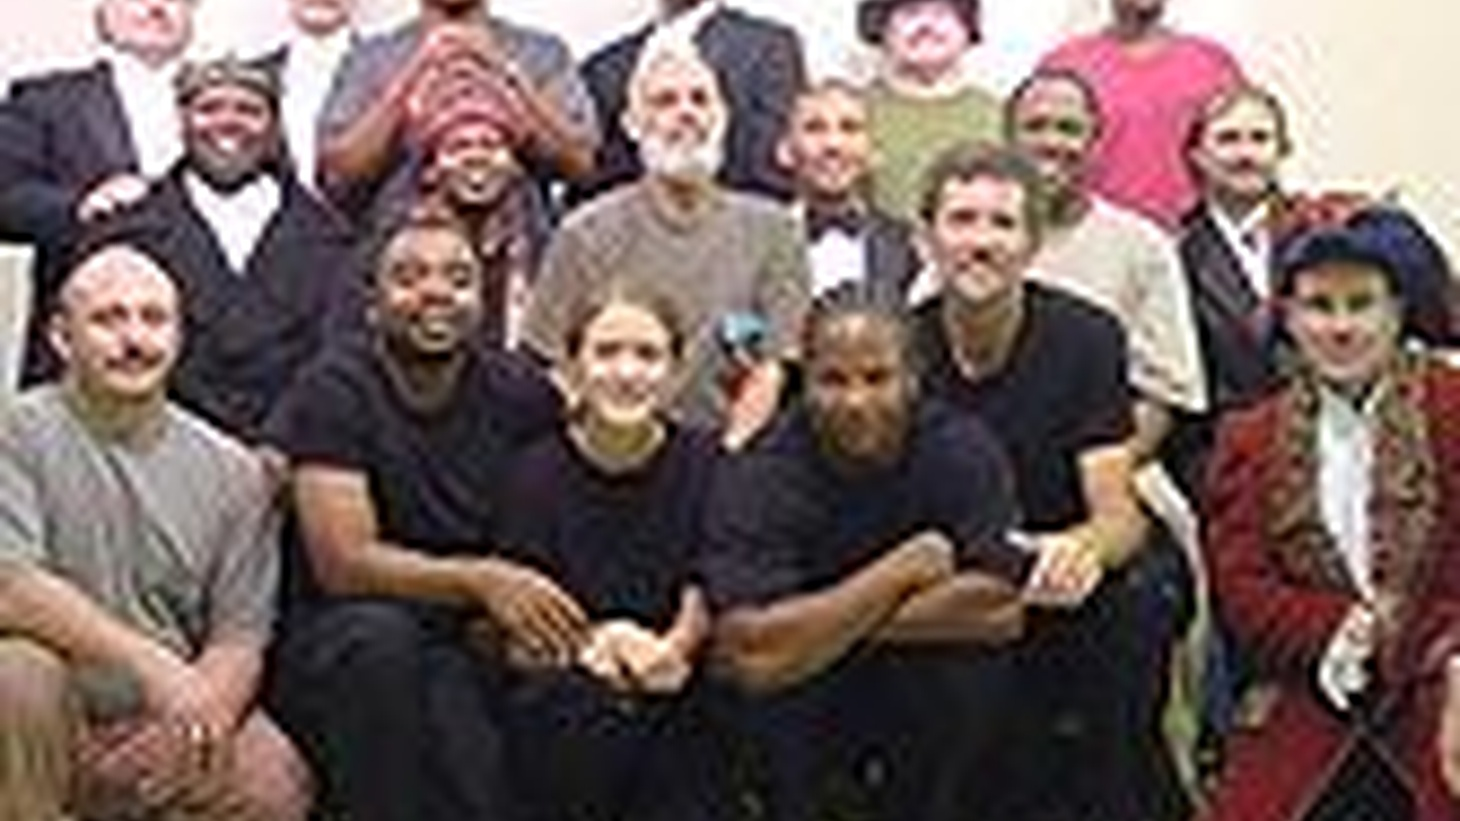 Murderers performing a show about murder: at a Prison in Missouri, inmates put on Hamlet. Danny Waller plays Hamlet's murdered father and murderers critique Shakespeare's fictional murder.